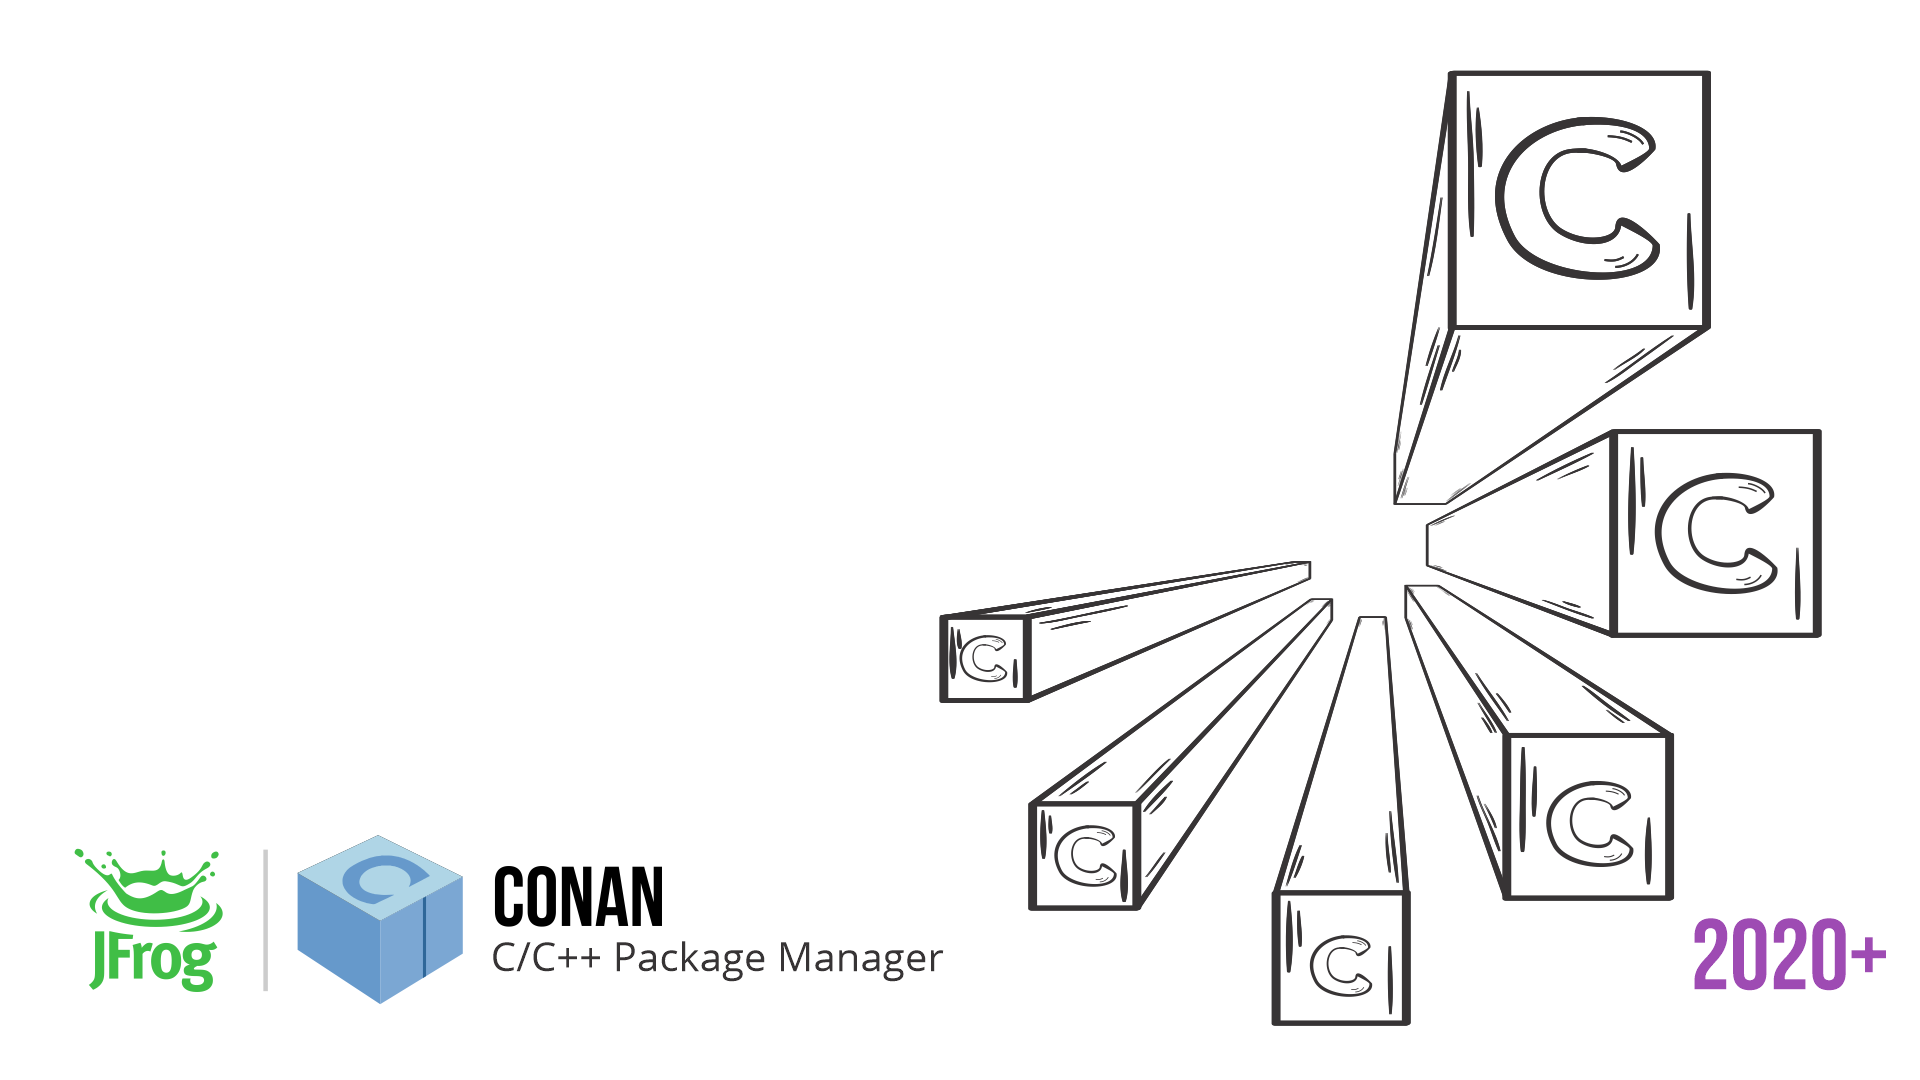 Conan C/C++ Package Manager (2020+)